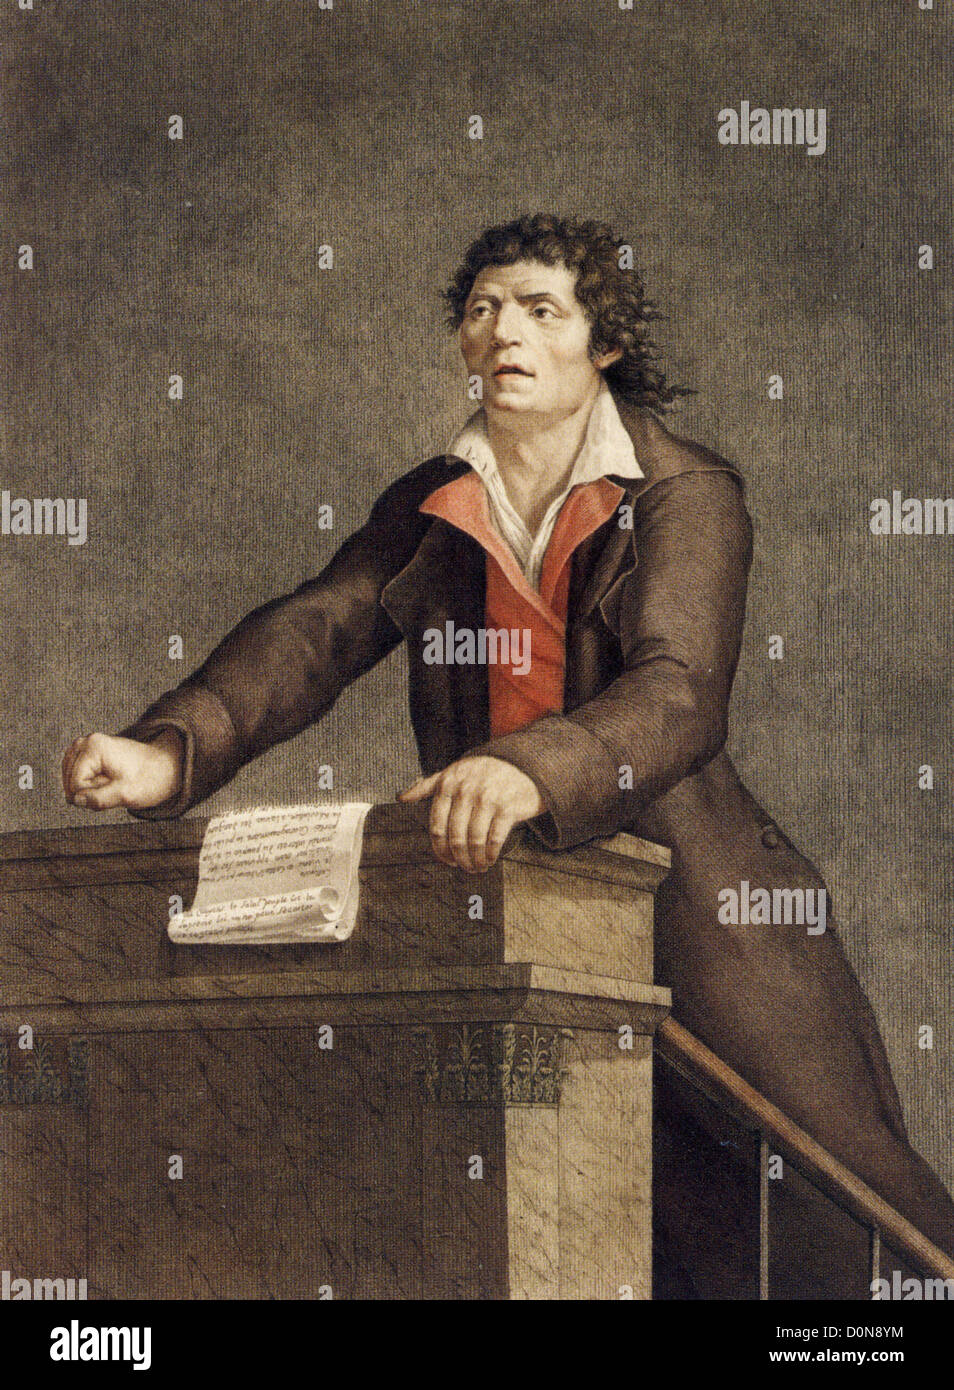 JEAN-PAUL MARAT (1743-1793) Swiss-born scientist and physician at his trial in April 1793 - Stock Image